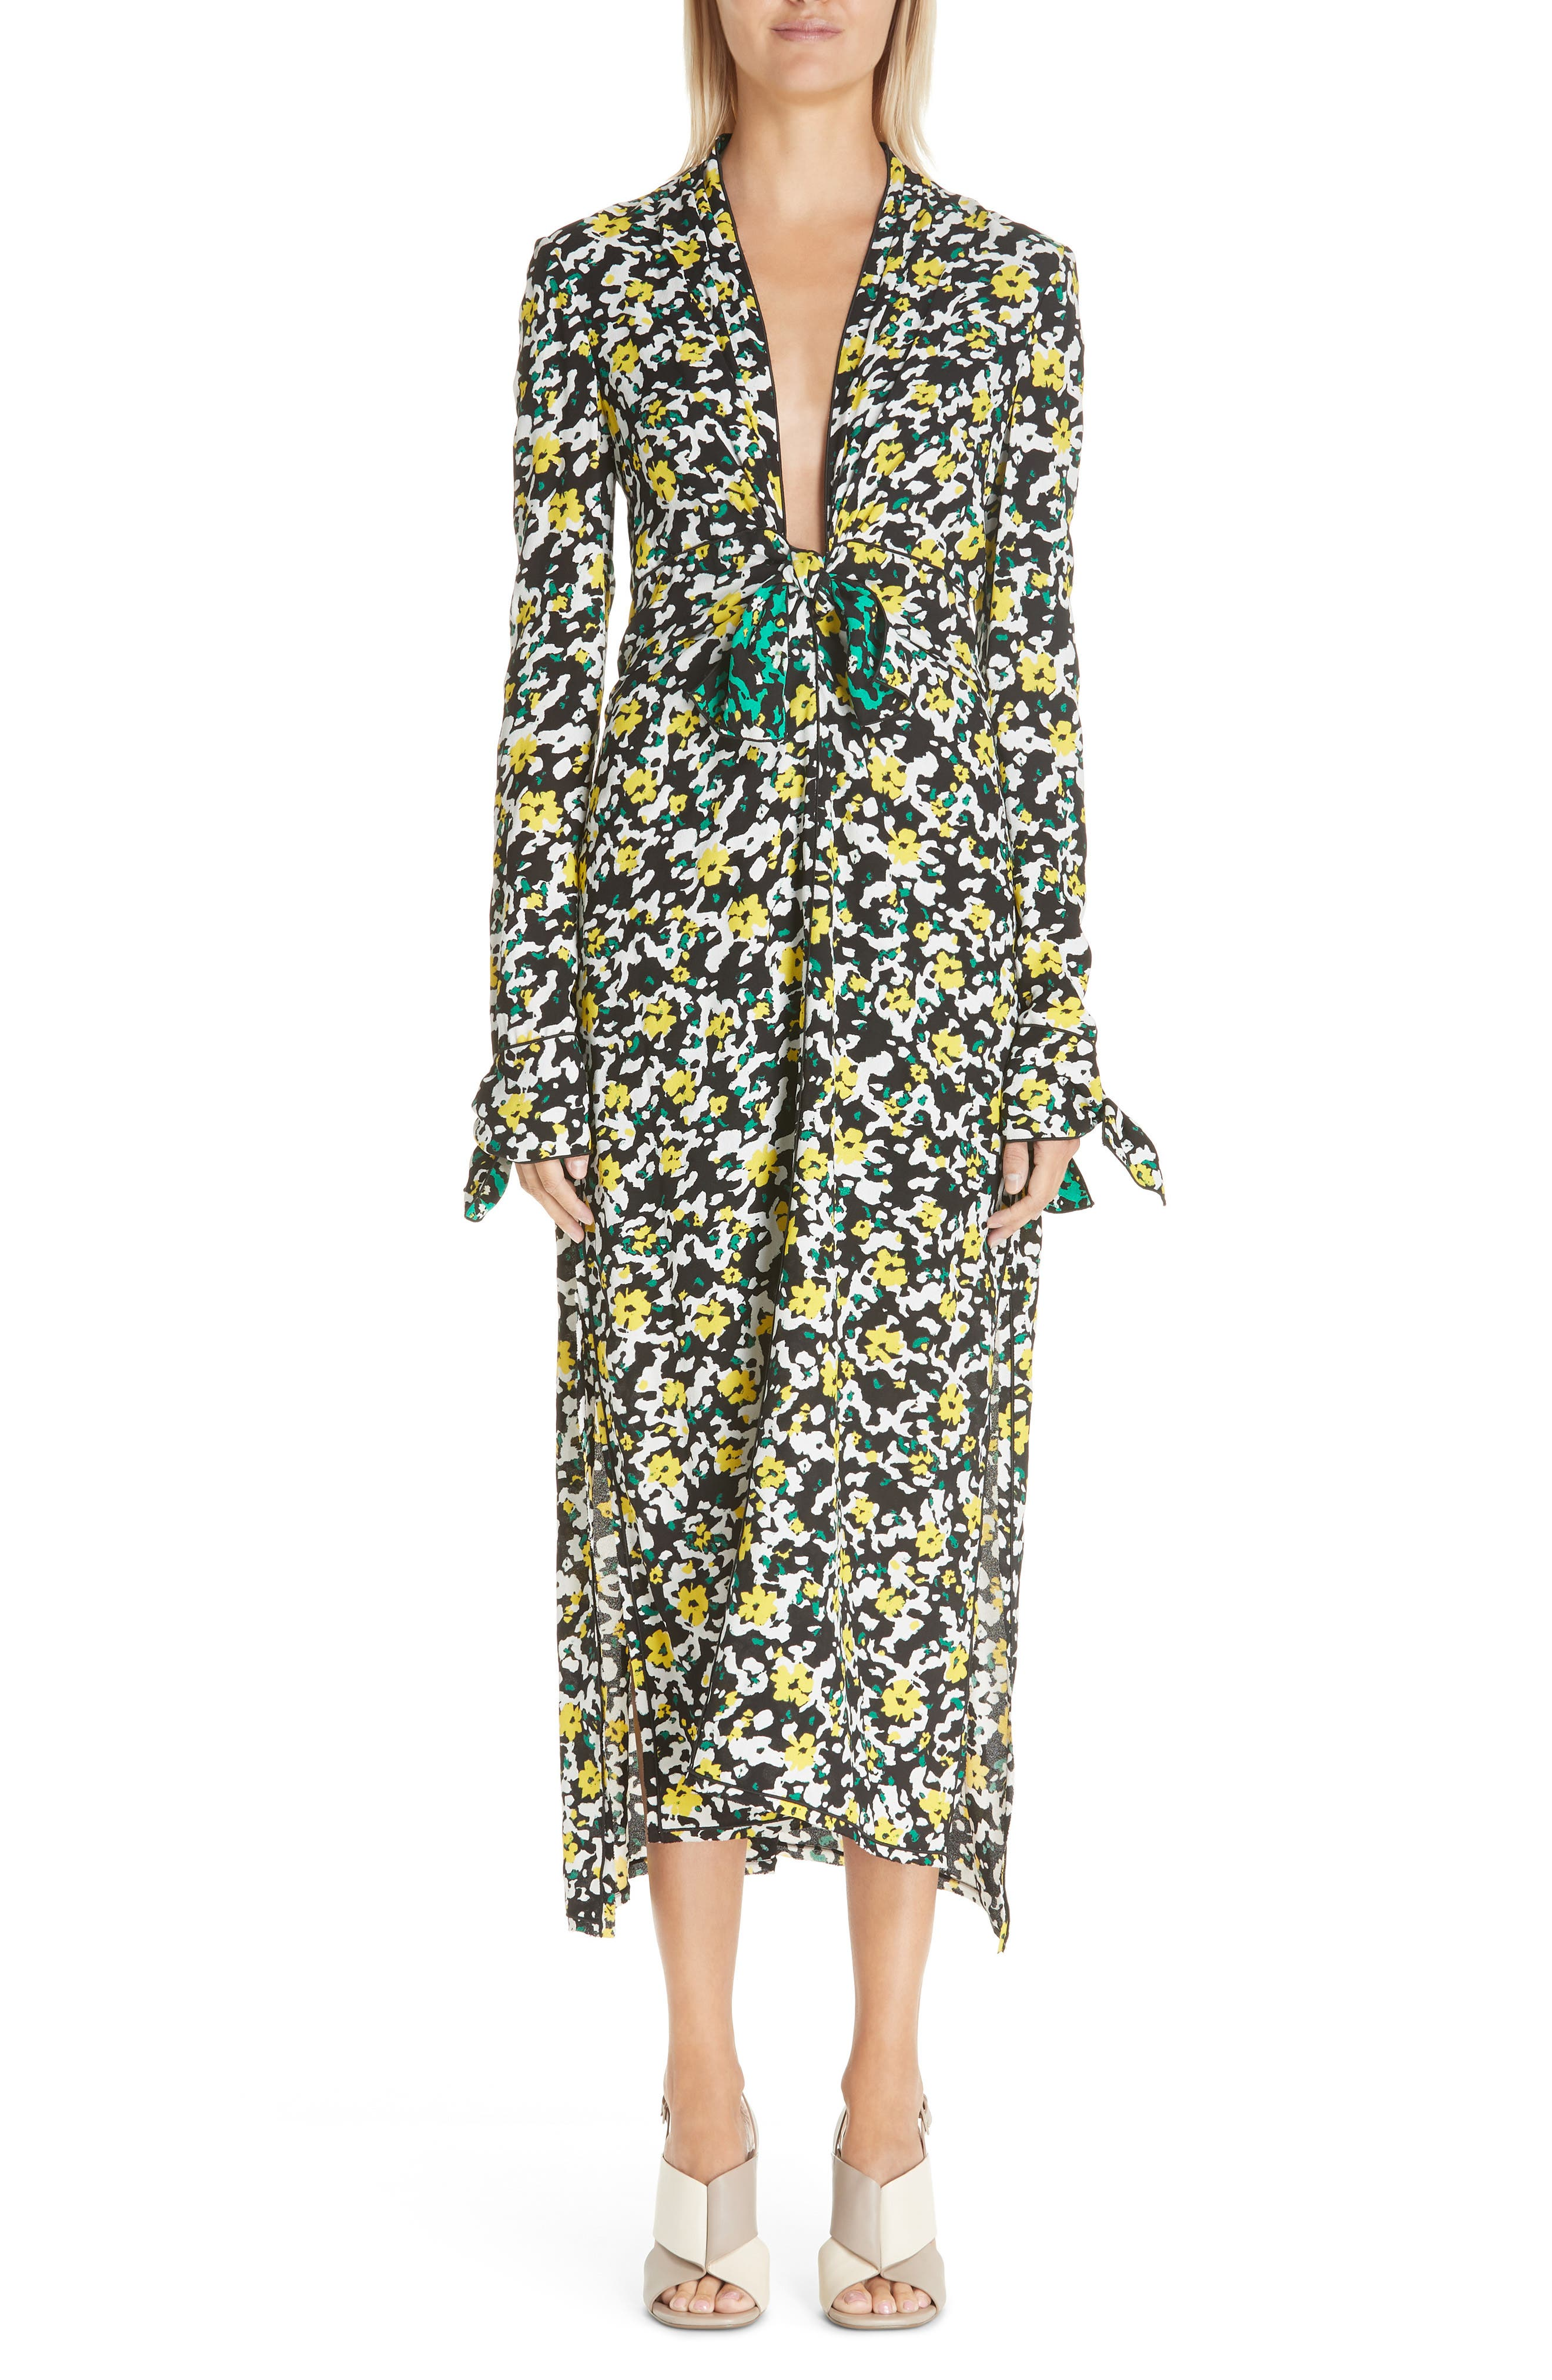 Proenza Schouler Floral Print Knotted Midi Dress, White